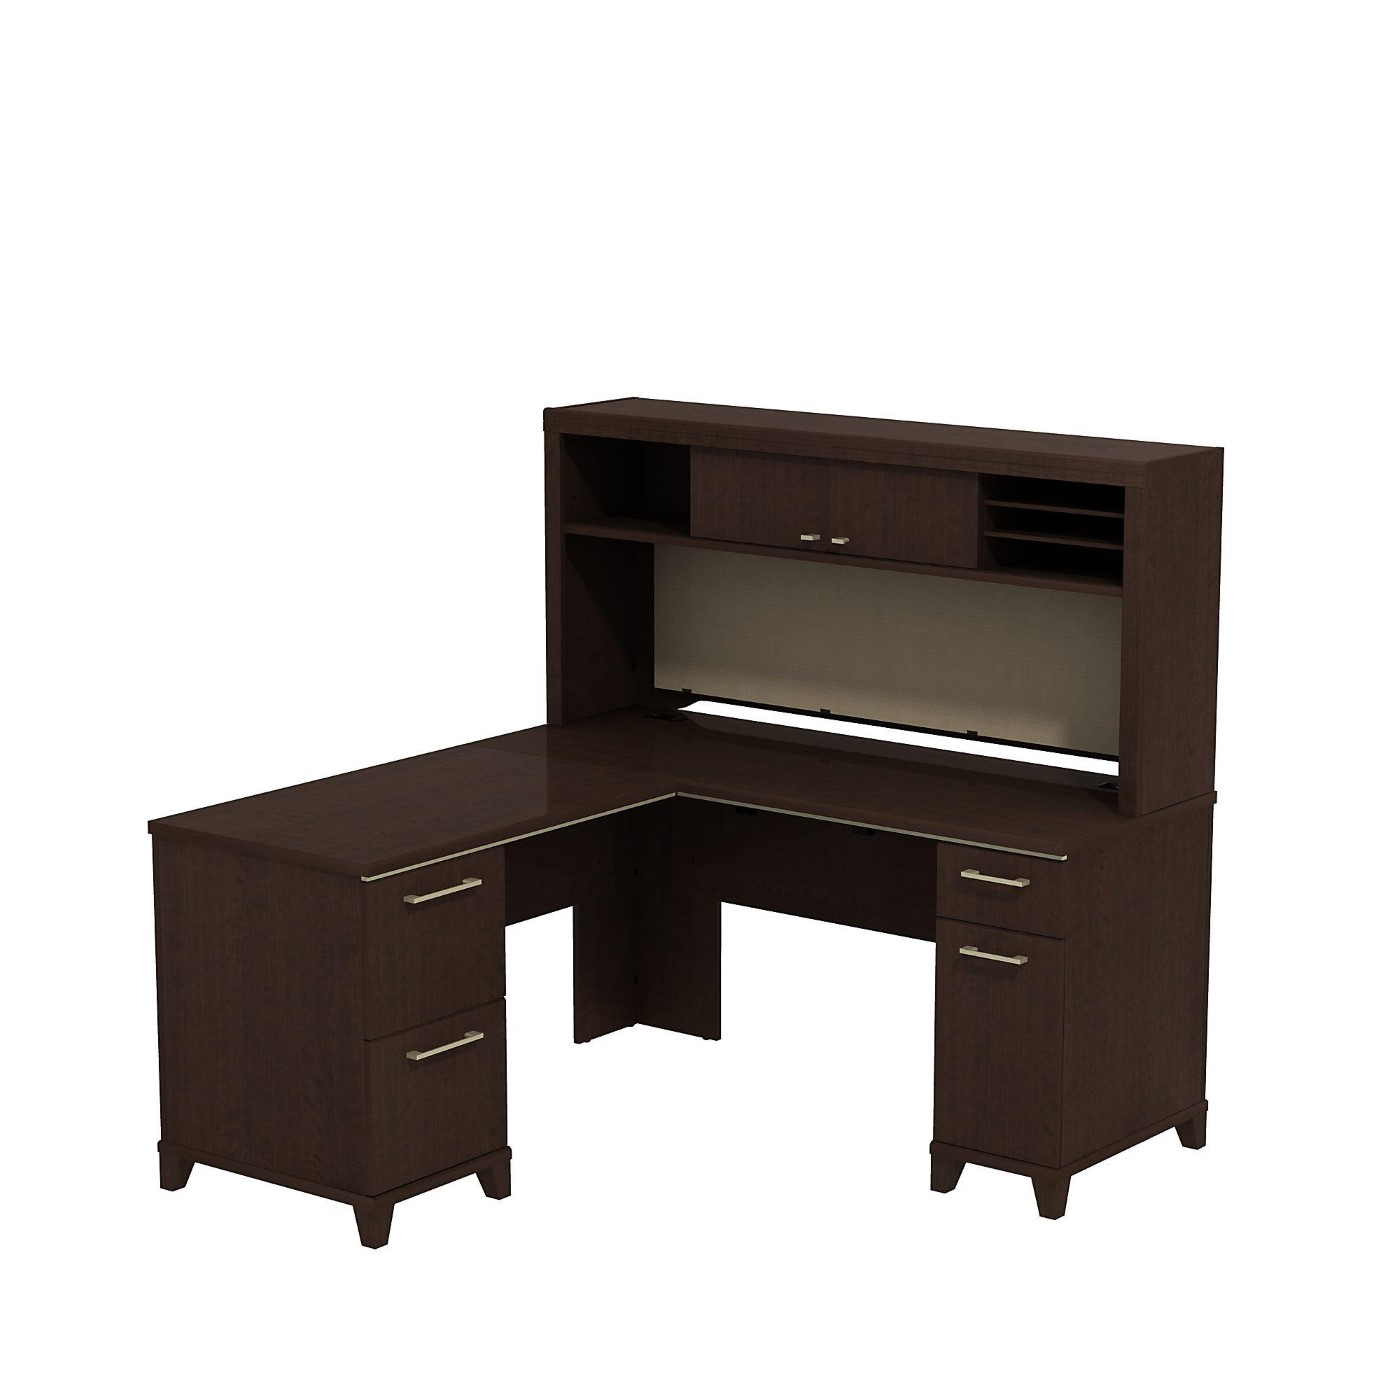 BUSH BUSINESS FURNITURE ENTERPRISE 60W X 60D L SHAPED DESK WITH HUTCH. FREE SHIPPING</font></b></font>&#x1F384<font color=red><b>ERGONOMICHOME HOLIDAY SALE - ENDS DEC. 17, 2019</b></font>&#x1F384